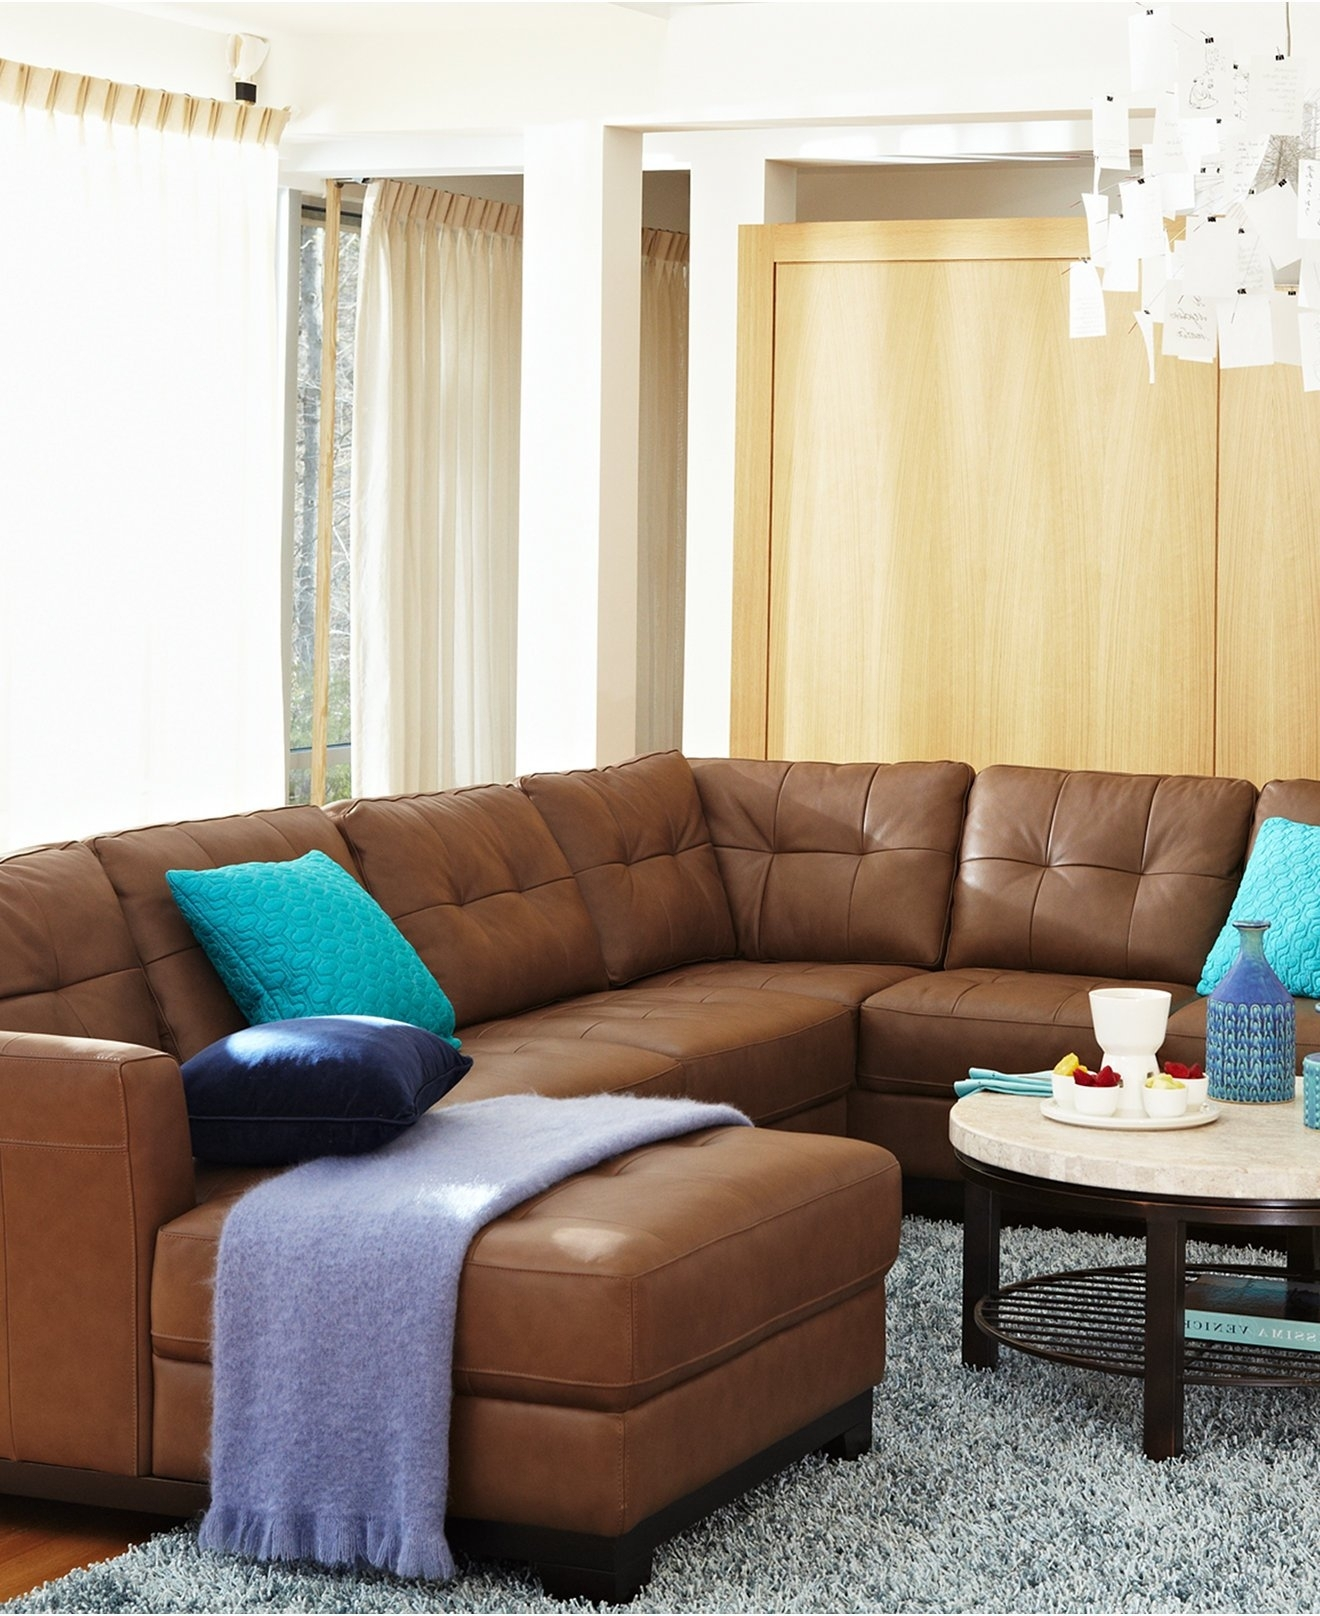 Versatile Macys Leather Sofa Sofas & Sectionals Brown Leather Sofa For Macys Leather Sectional Sofas (View 9 of 10)